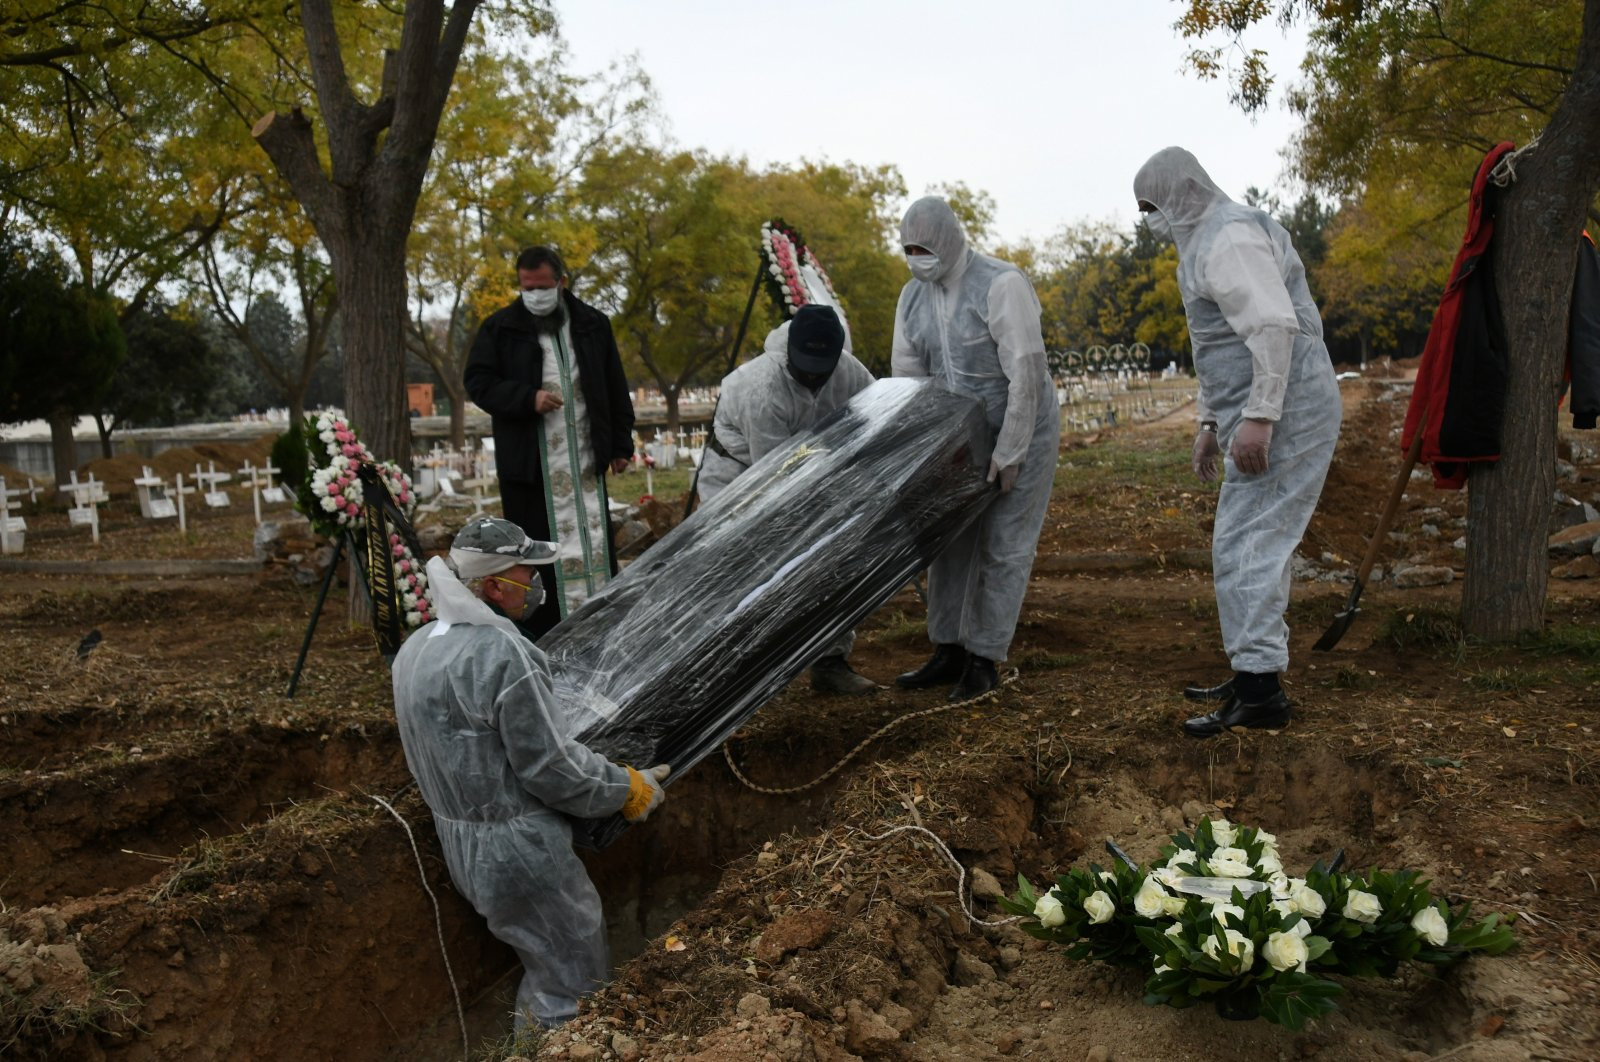 Pallbearers in personal protective equipment (PPE) place a coffin inside a grave, in a designated cemetery area for patients who died from the coronavirus disease (COVID-19), in Thessaloniki, Greece, Dec. 3, 2020. (Reuters Photo)